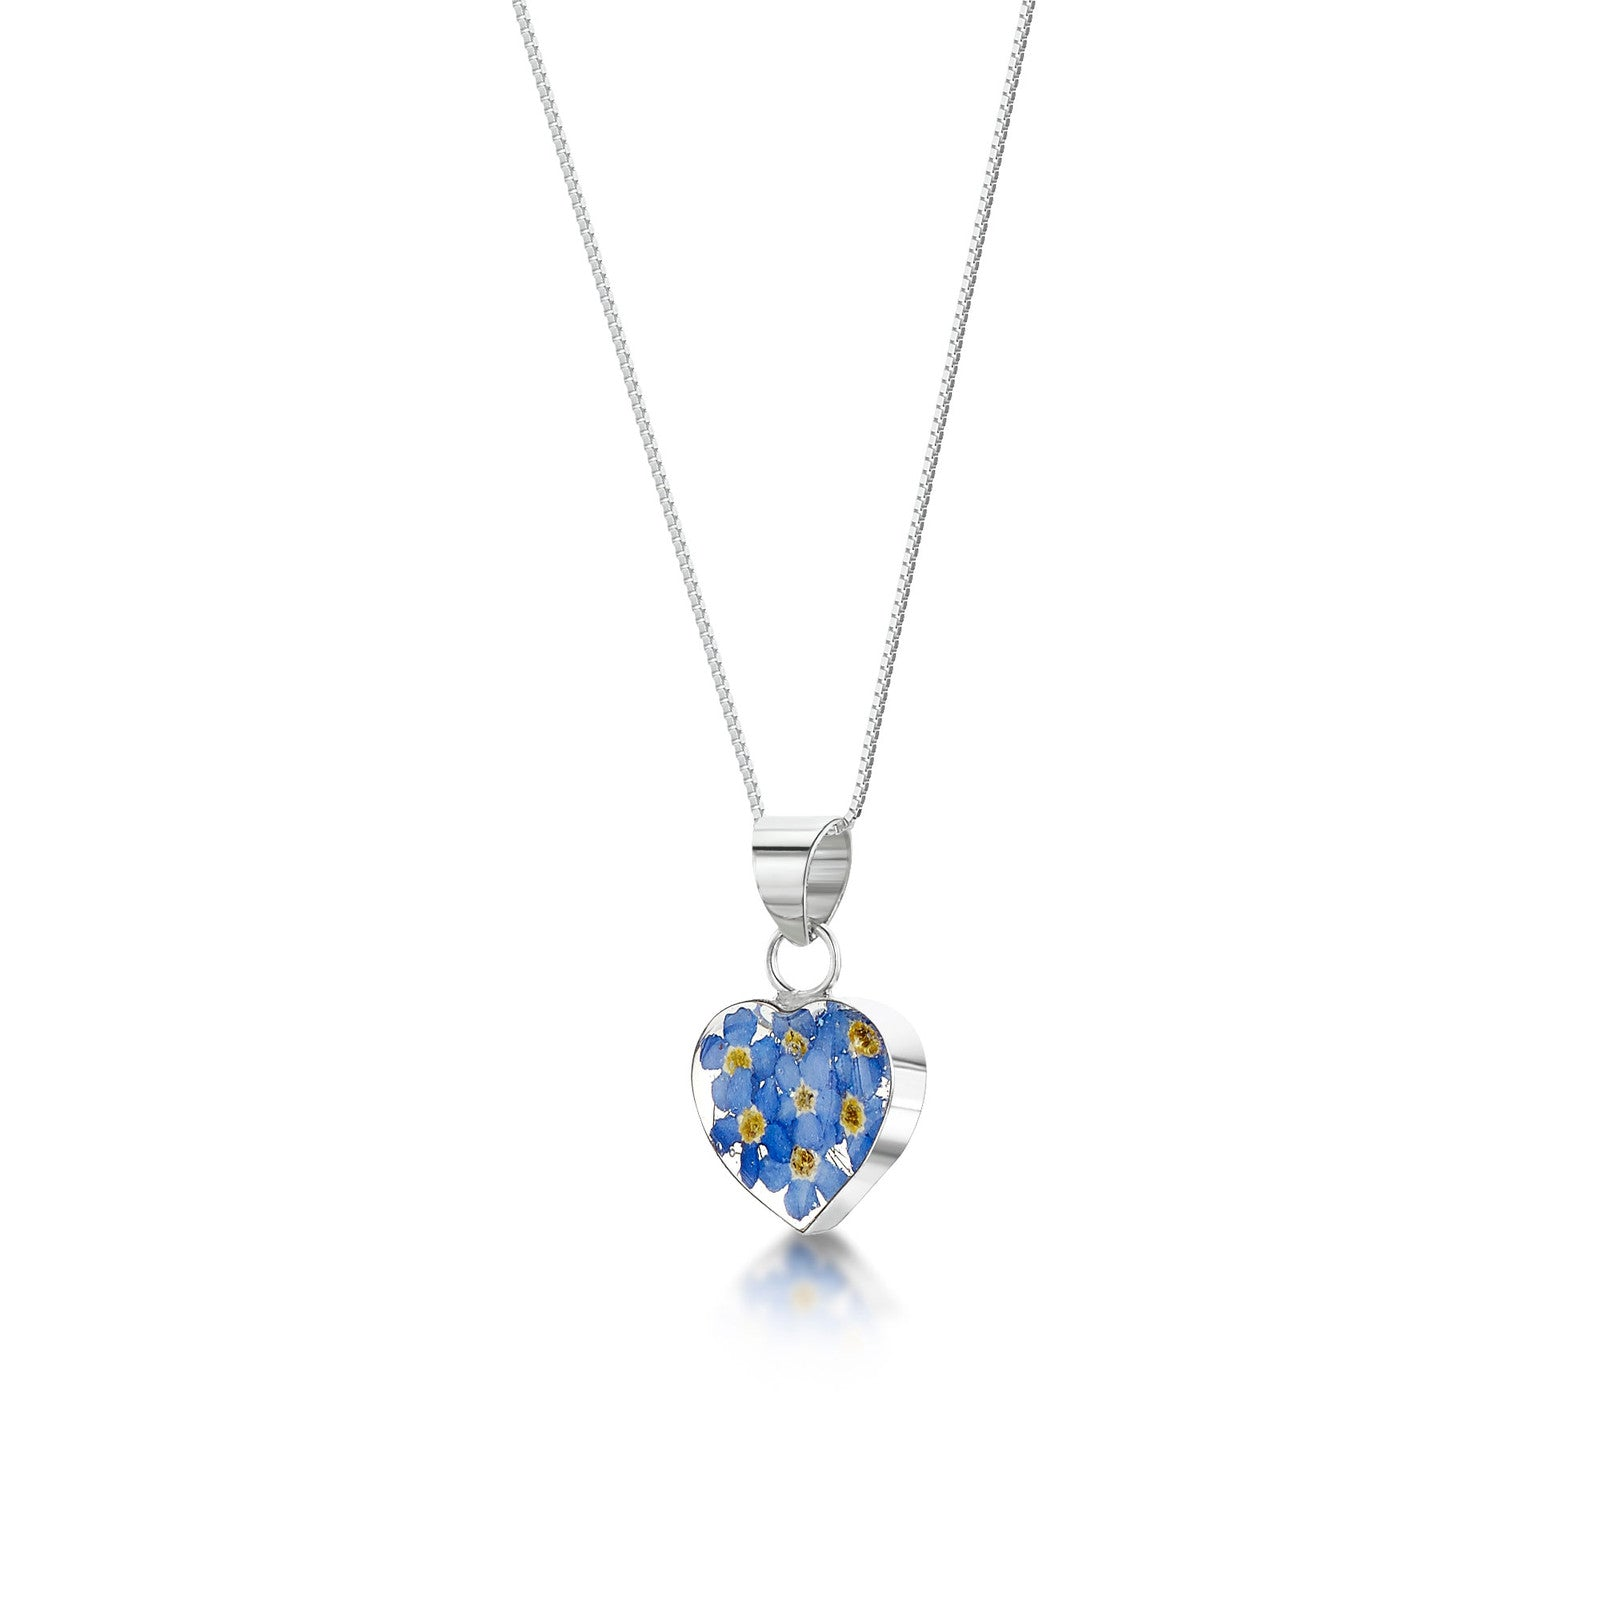 Silver Pendant - Forget-me-not-Heart